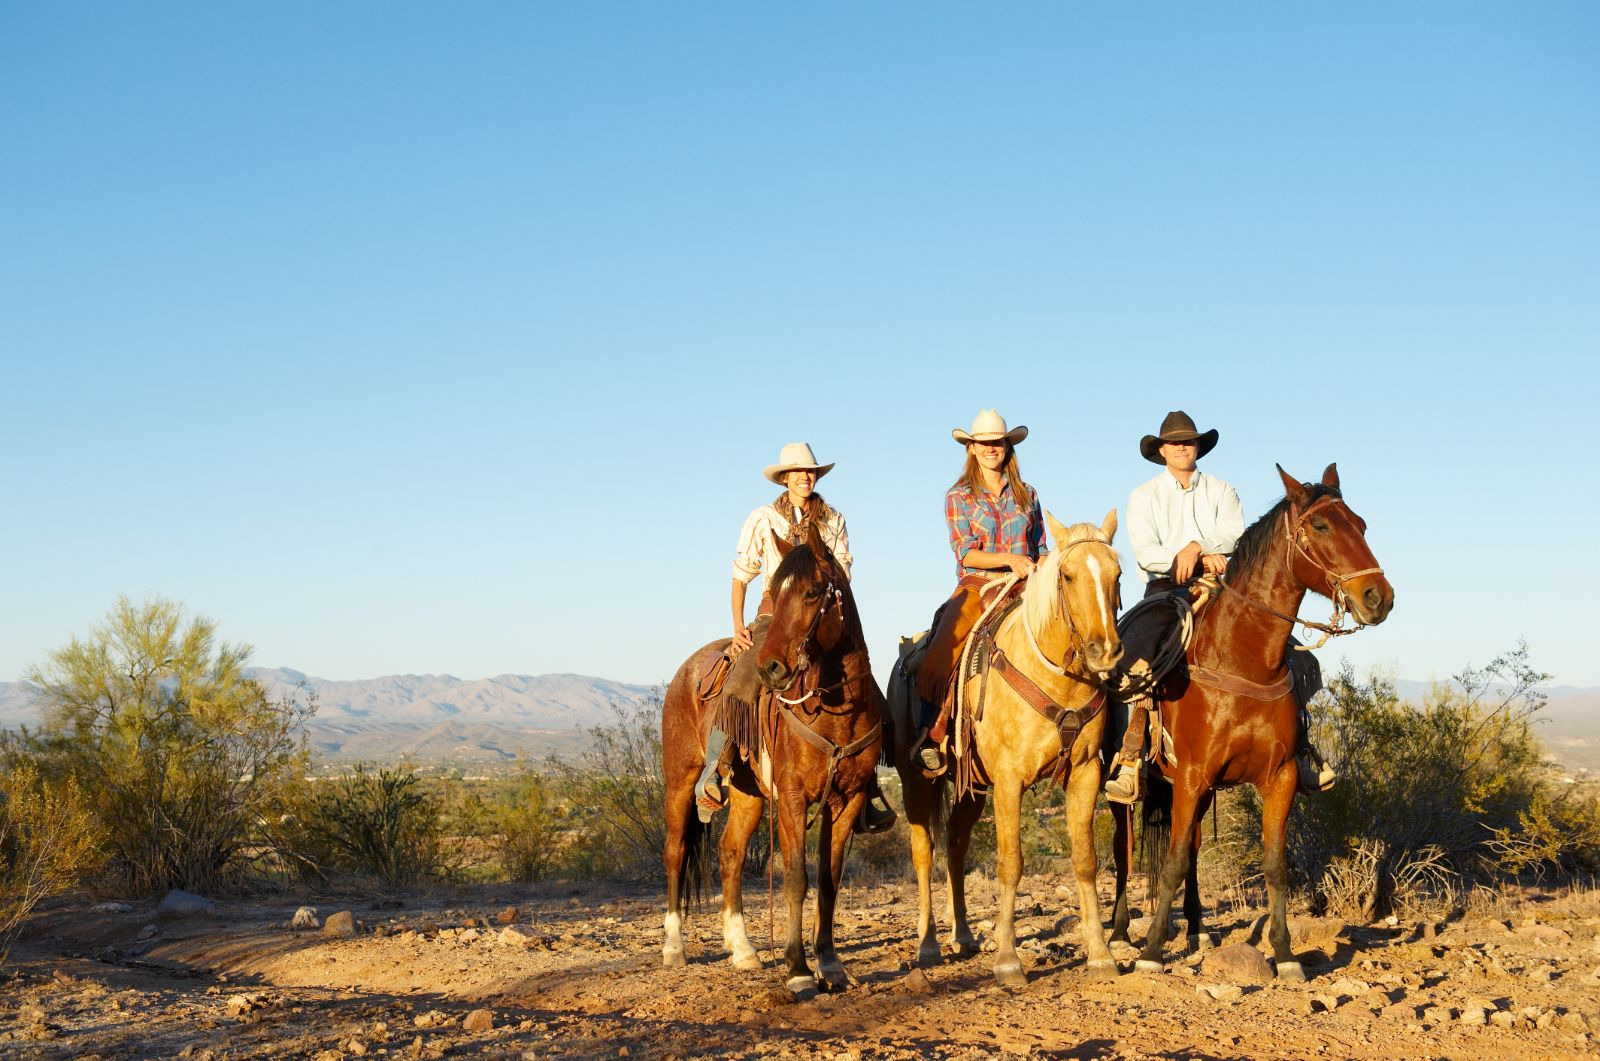 Sunset horseback ride at Rancho de los Caballeros